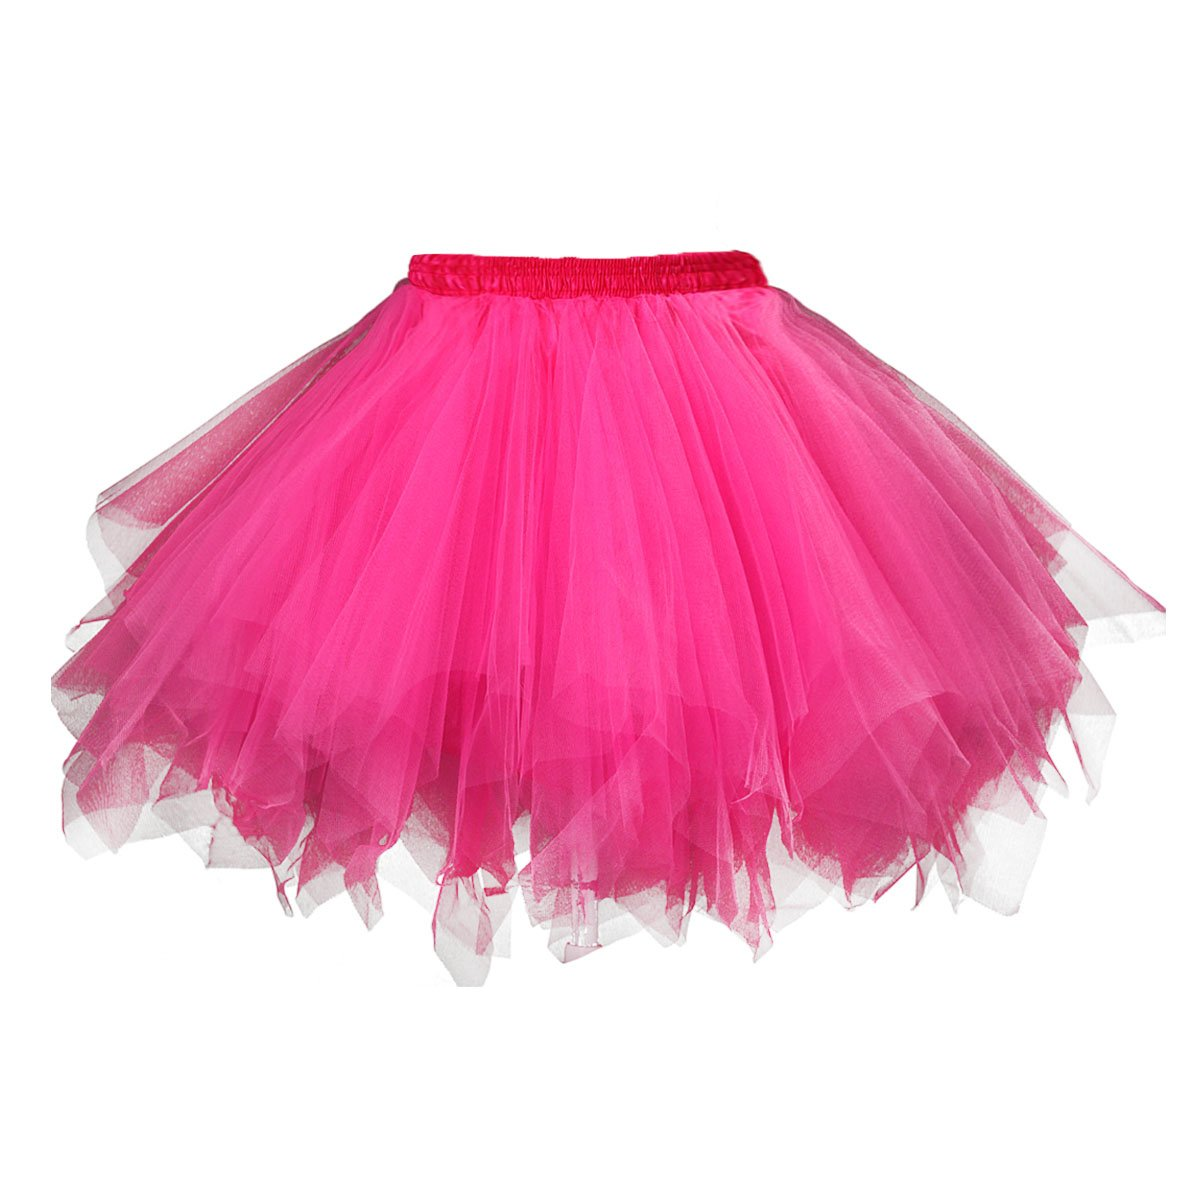 Topdress Women's 1950s Vintage Tutu Petticoat Ballet Bubble Skirt (26 Colors) Fuchsia XL